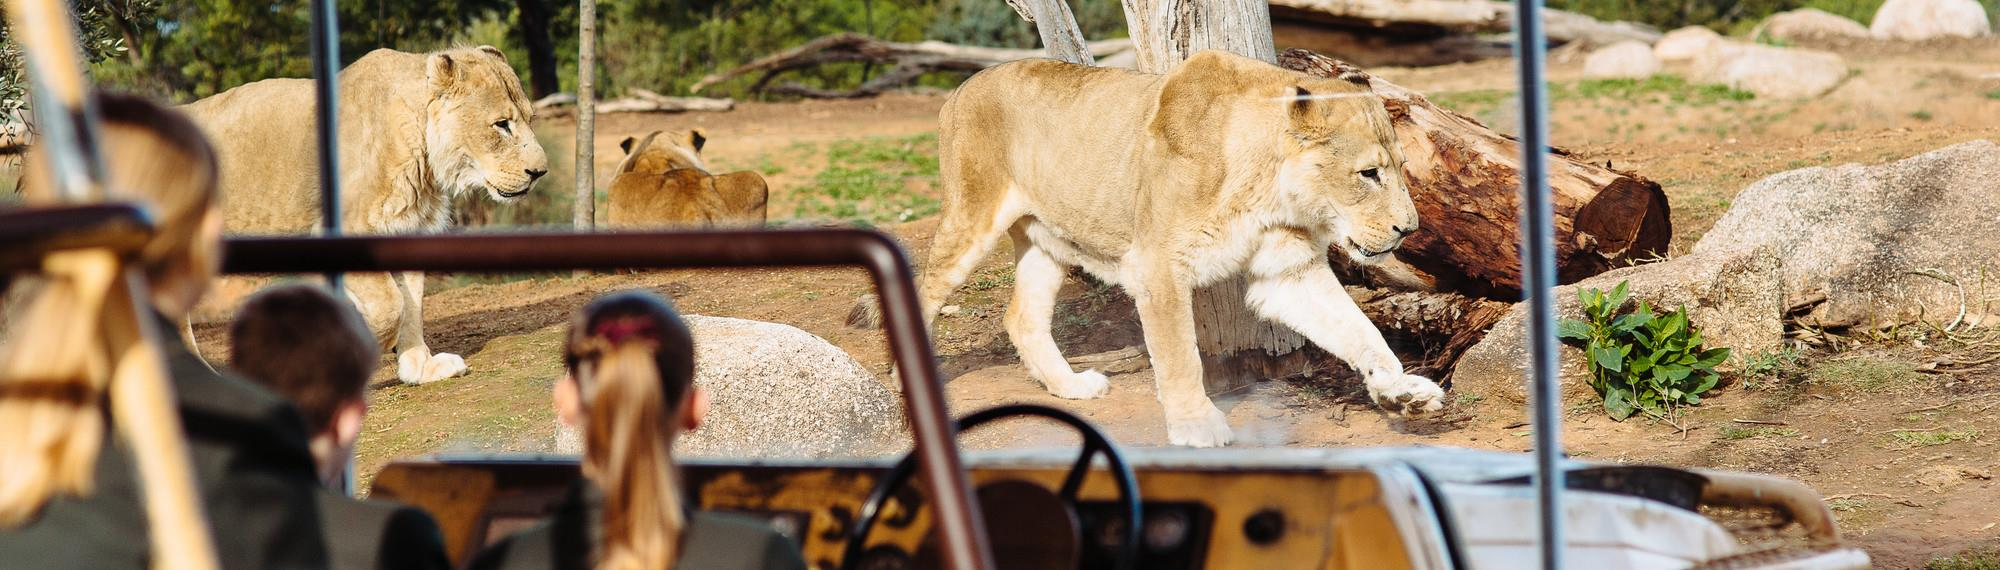 Students sitting in stationary jeep observing the lions through the glass viewing area. Three lions can be seen.